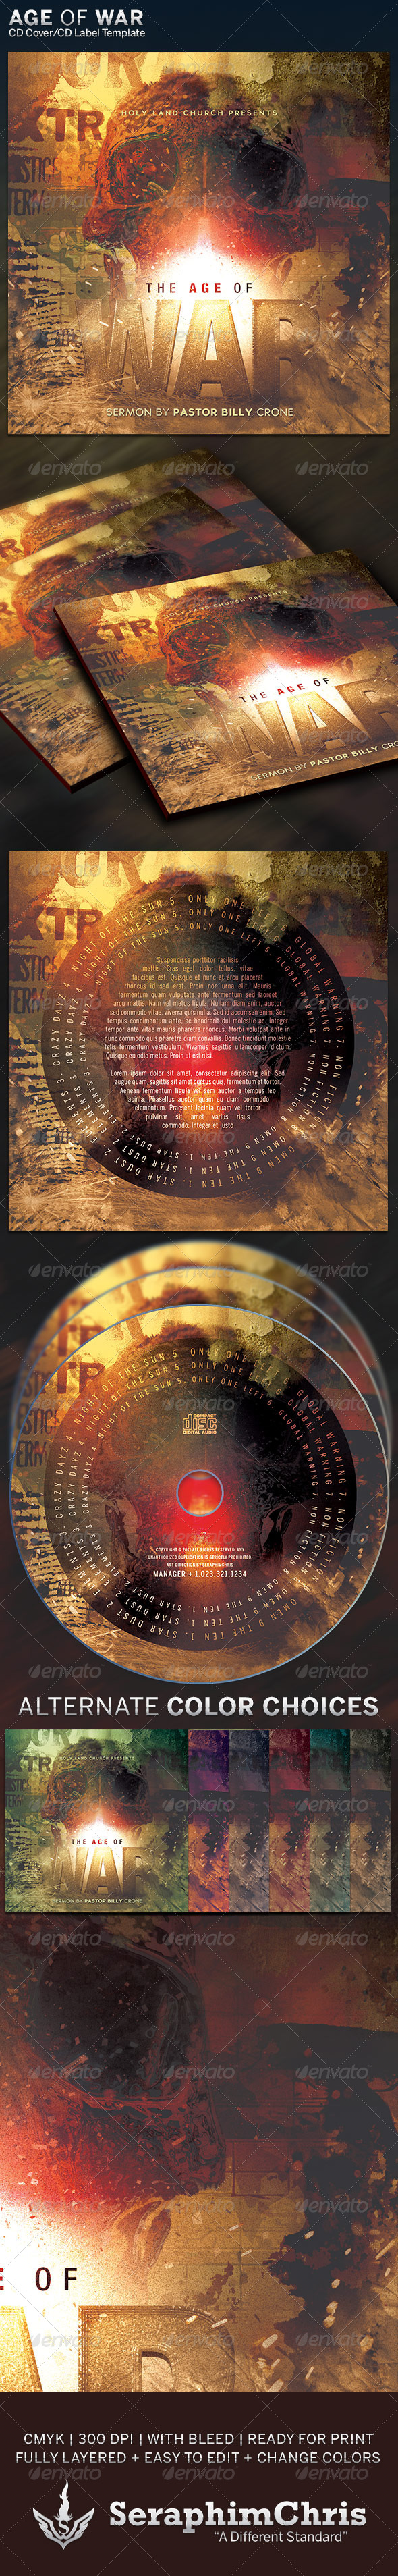 GraphicRiver Art of War CD Cover Artwork Template 6347102